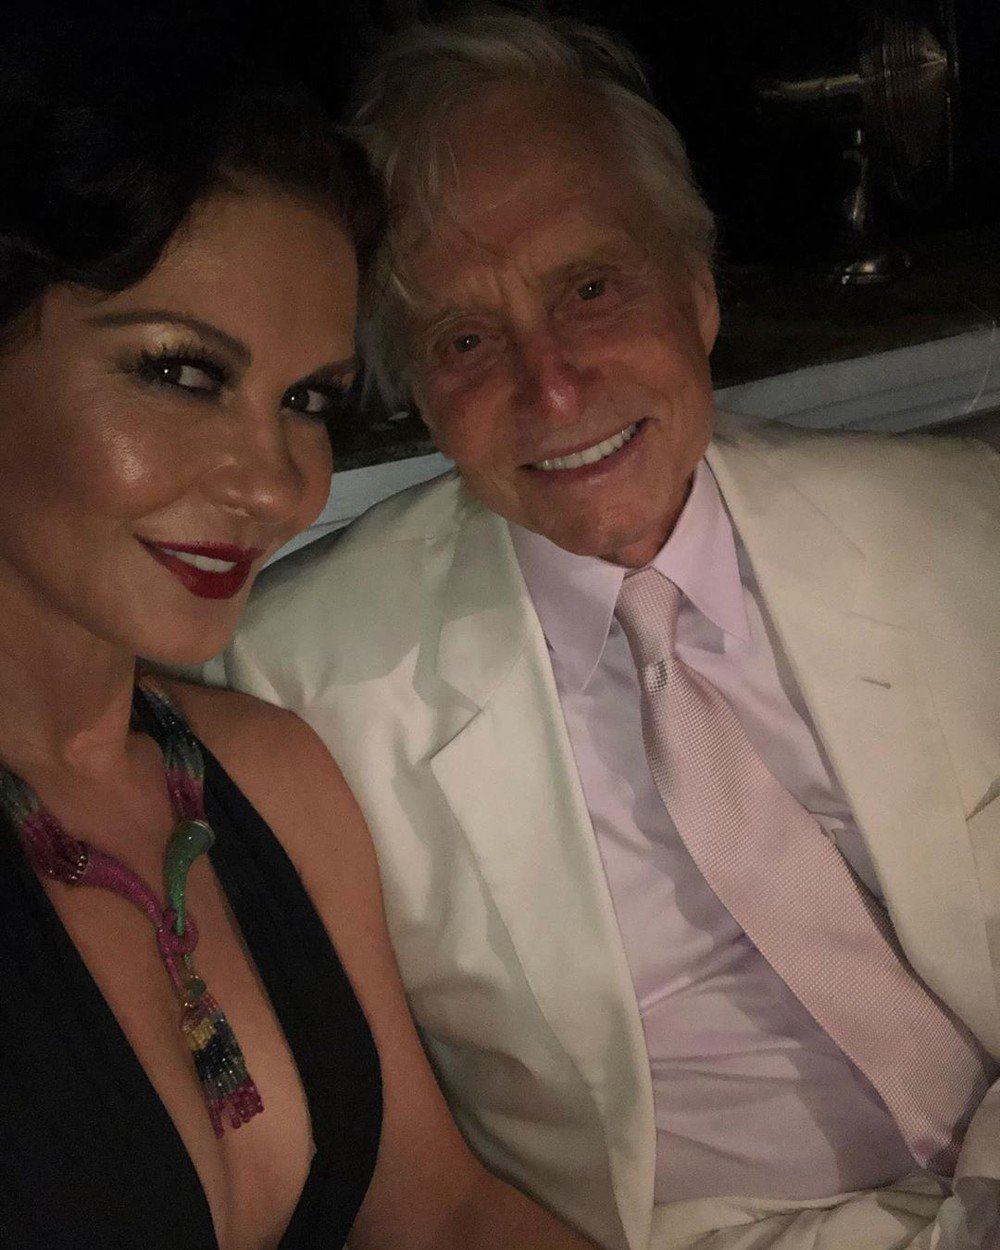 Catherine Zeta Jones has posted a photo on Instagram with the following remarks: Captivating Capriâ¤ï¸Happy Birthday to our dear friend Lawrence.     Instagram, 2019-07-22 11:21:21.  Photo supplied by insight media. Service fee applies.  NICHT ZUR VERÃFFENTLICHUNG IN BÃCHERN UND BILDBÃNDEN! EDITORIAL USE ONLY! / MAY NOT BE PUBLISHED IN BOOKS AND ILLUSTRATED BOOKS! Please note: Fees charged by the agency are for the agencyâs services only, and do not, nor are they intended to, convey to the user any ownership of Copyright or License in the material. The agency does not claim any ownership including but not limited to Copyright or License in the attached material. By publishing this material you expressly agree to indemnify and to hold the agency and its directors, shareholders and employees harmless from any loss, claims, damages, demands, expenses (including legal fees), or any causes of action or allegation against the agency arising out of or connected in any way with publication of the material., Image: 460100842, License: Rights-managed, Restrictions: NICHT ZUR VERÃFFENTLICHUNG IN BÃCHERN UND BILDBÃNDEN! Please note additional conditions in the caption, Model Release: no, Credit line: Profimedia, Insight Media